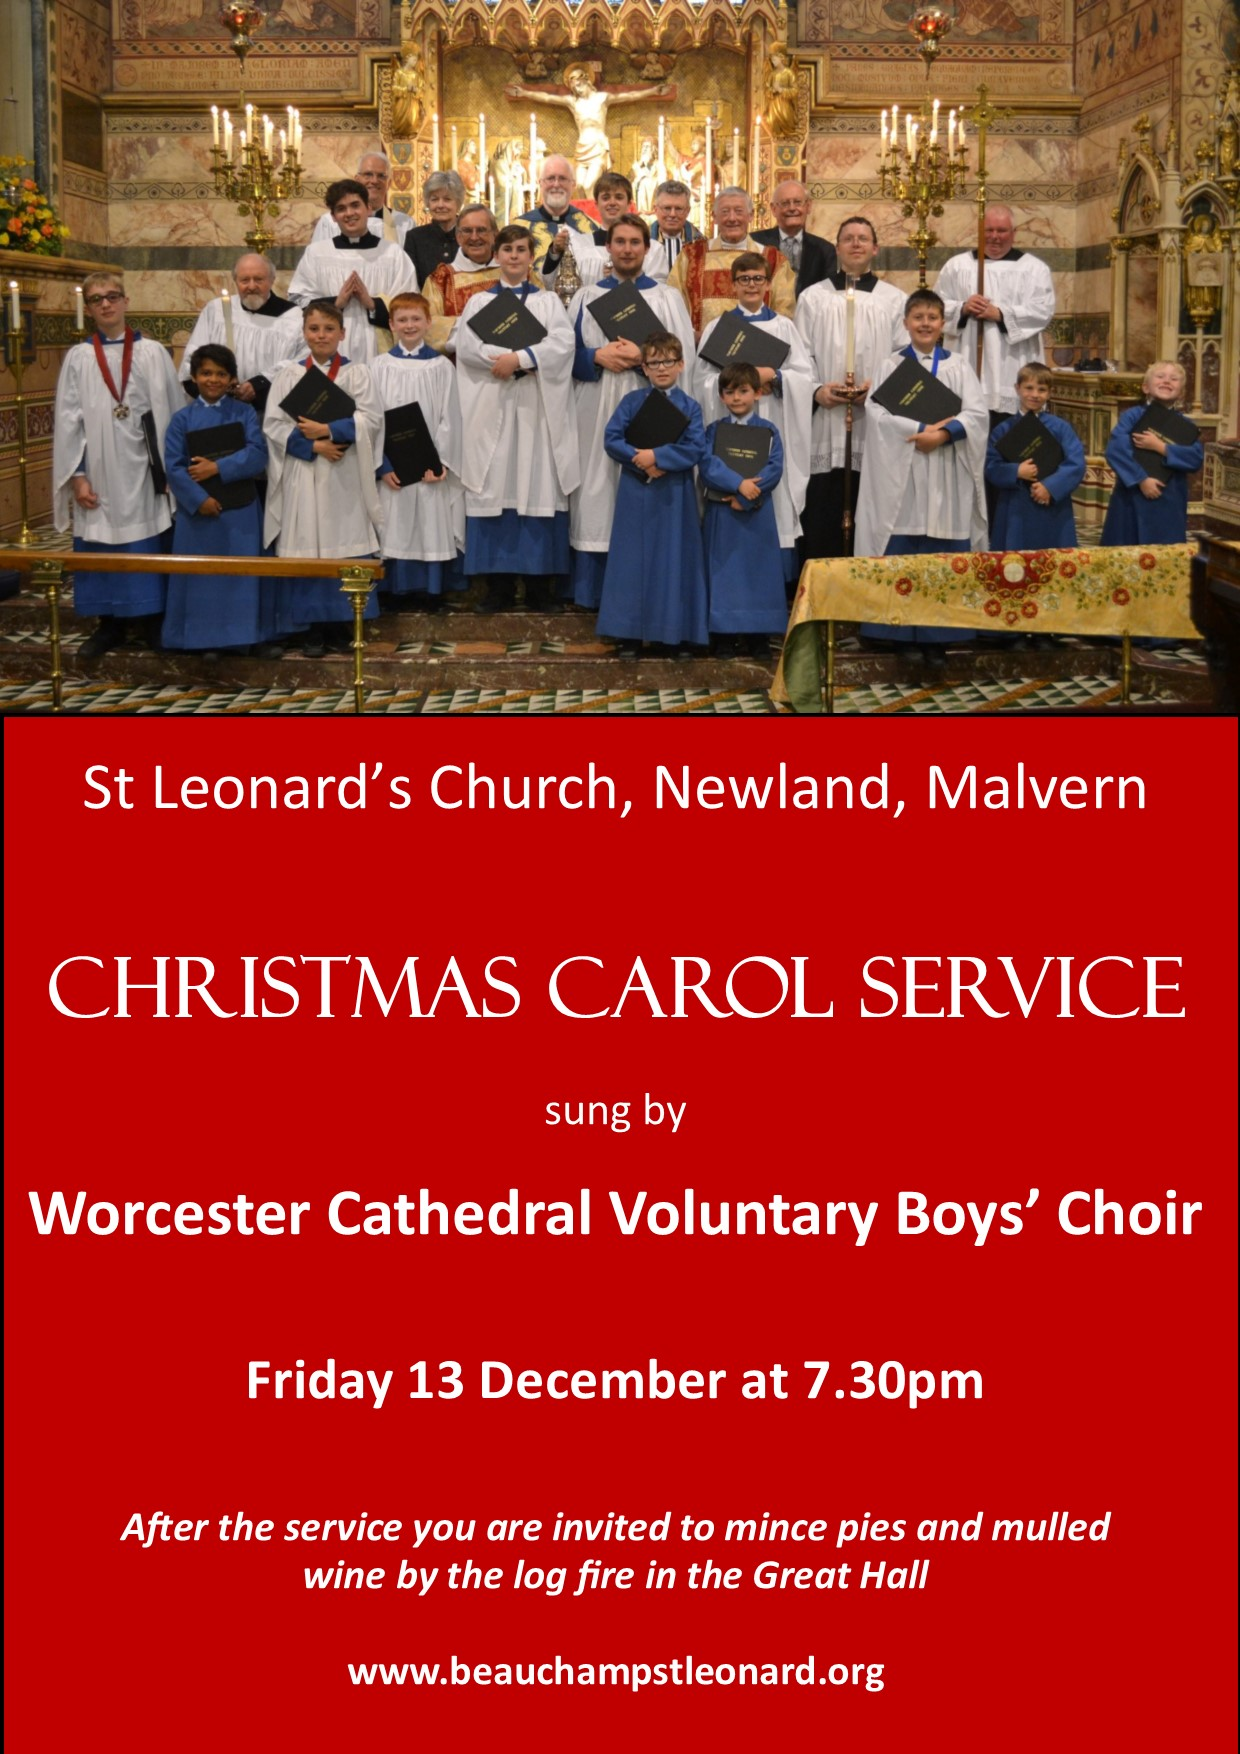 Carol Service sung by Worcester Cathedral Voluntary Choir